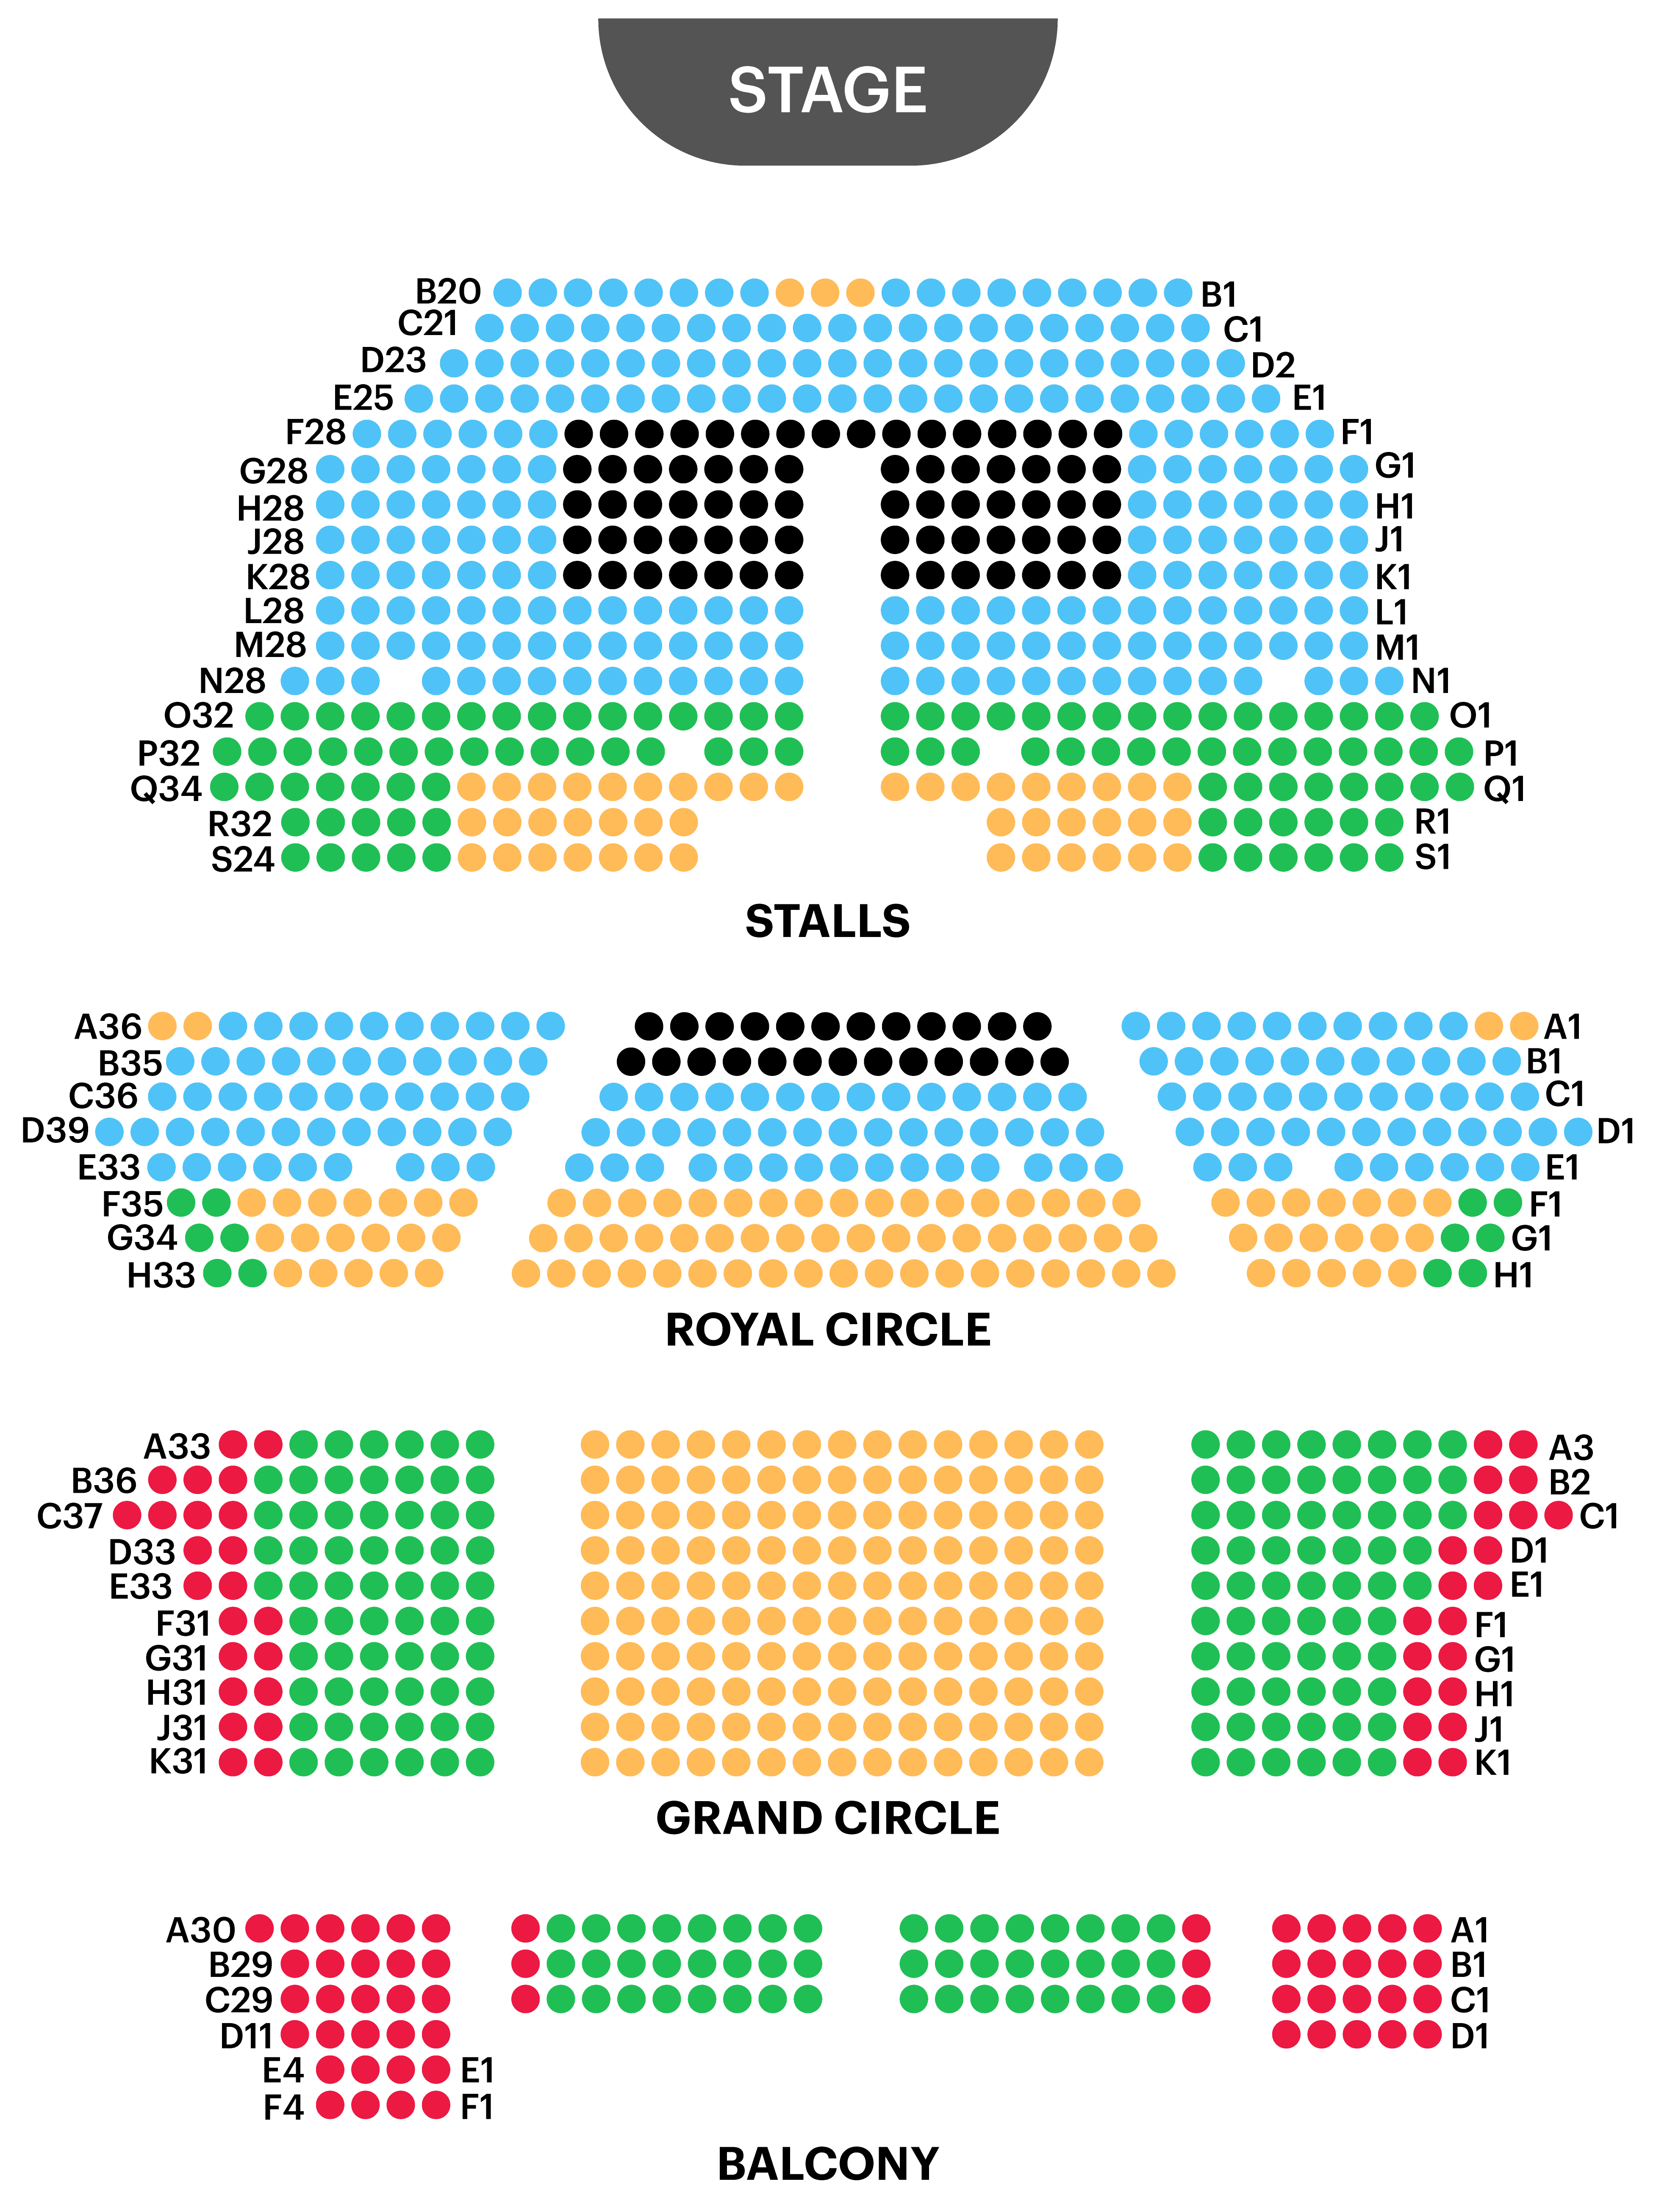 Her Majesty's Theatre Seating Map